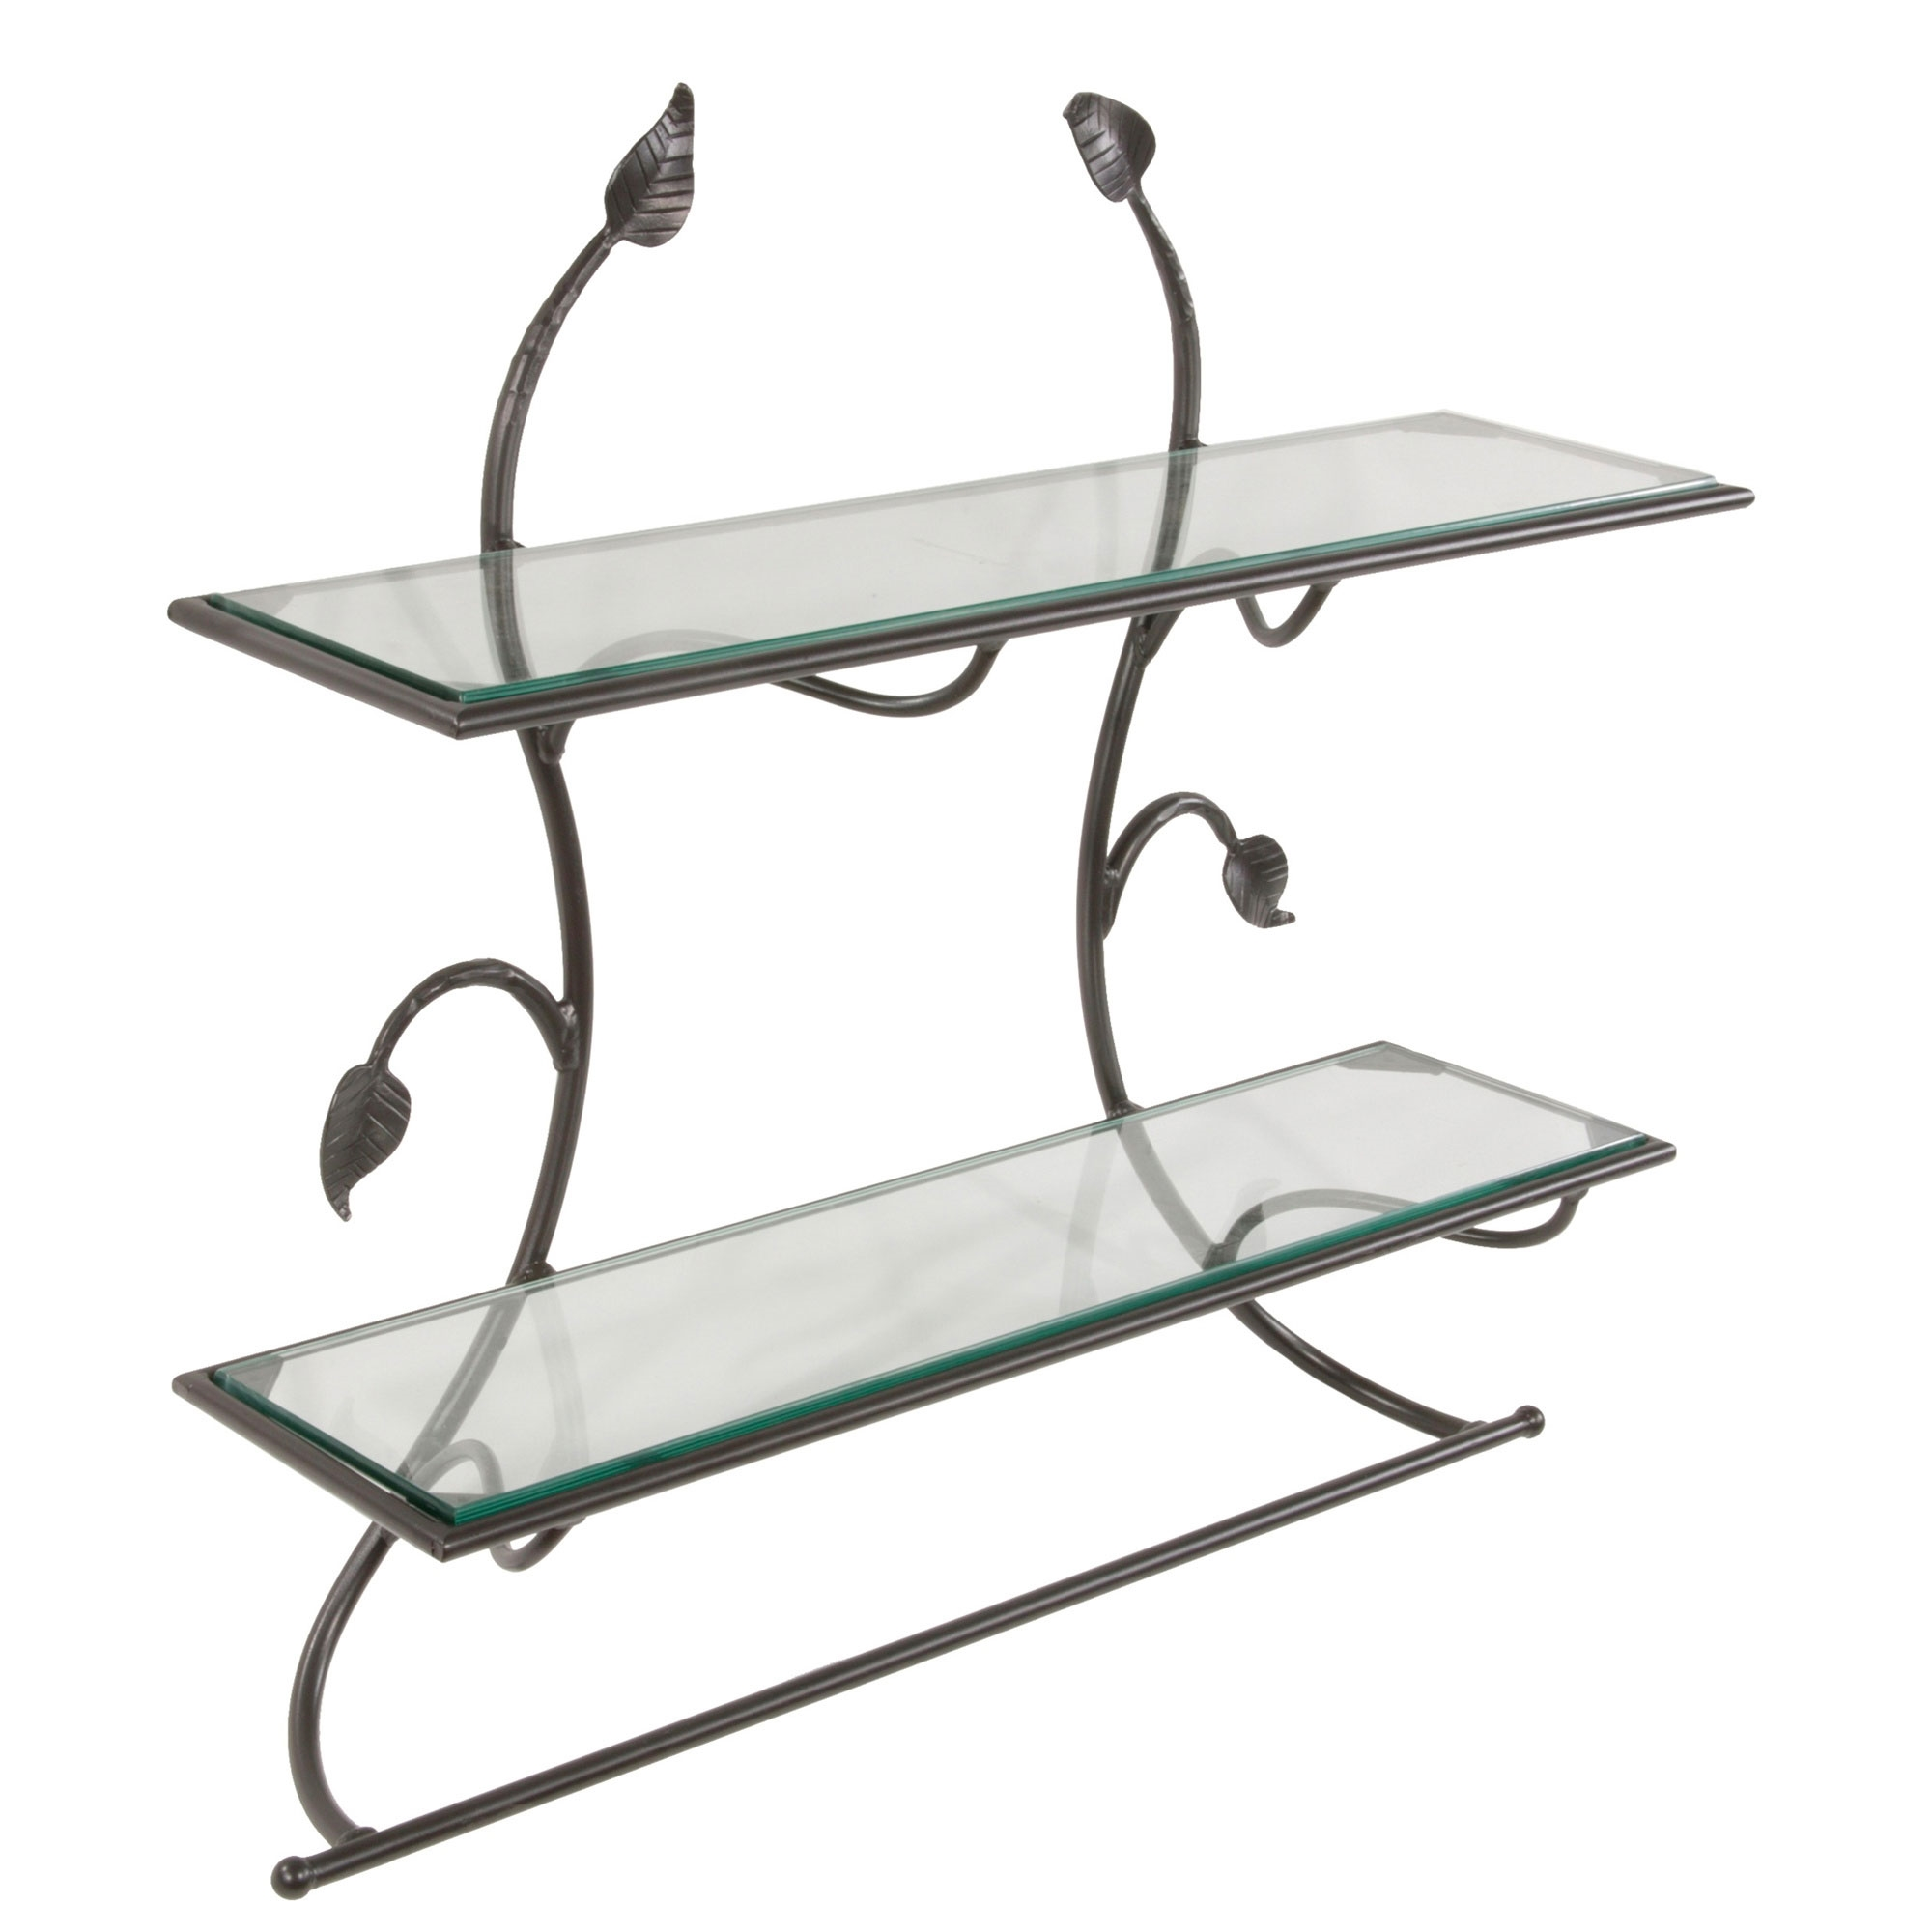 Pictured is the wrought iron Leaf Wall Shelf Towel Bar